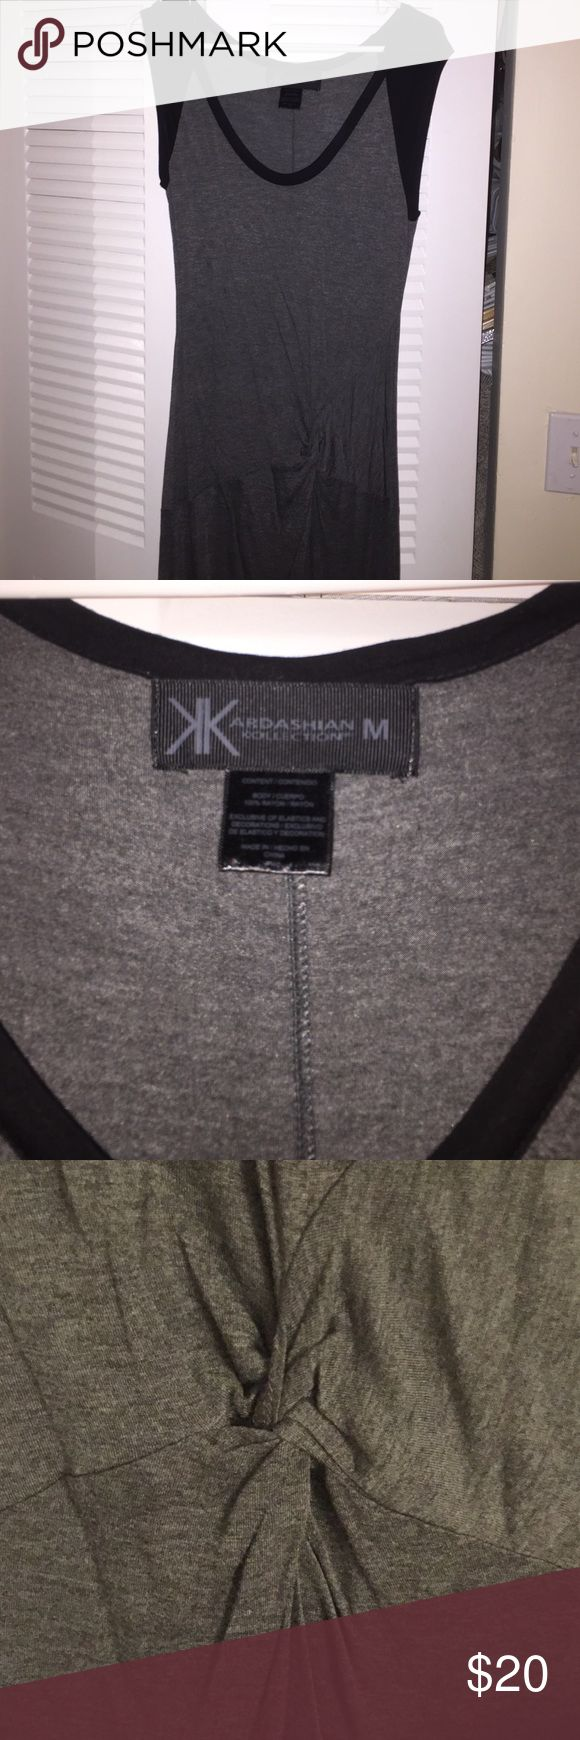 Kardashian Kollection women's gray midi dress M Kardashian Kollection women's gray short sleeve colorblock dress. Knotted center. Midi length. Women's sz M. Brand new, never worn without original tags. Fast shipping!  Kardashian Kollection Dresses Midi